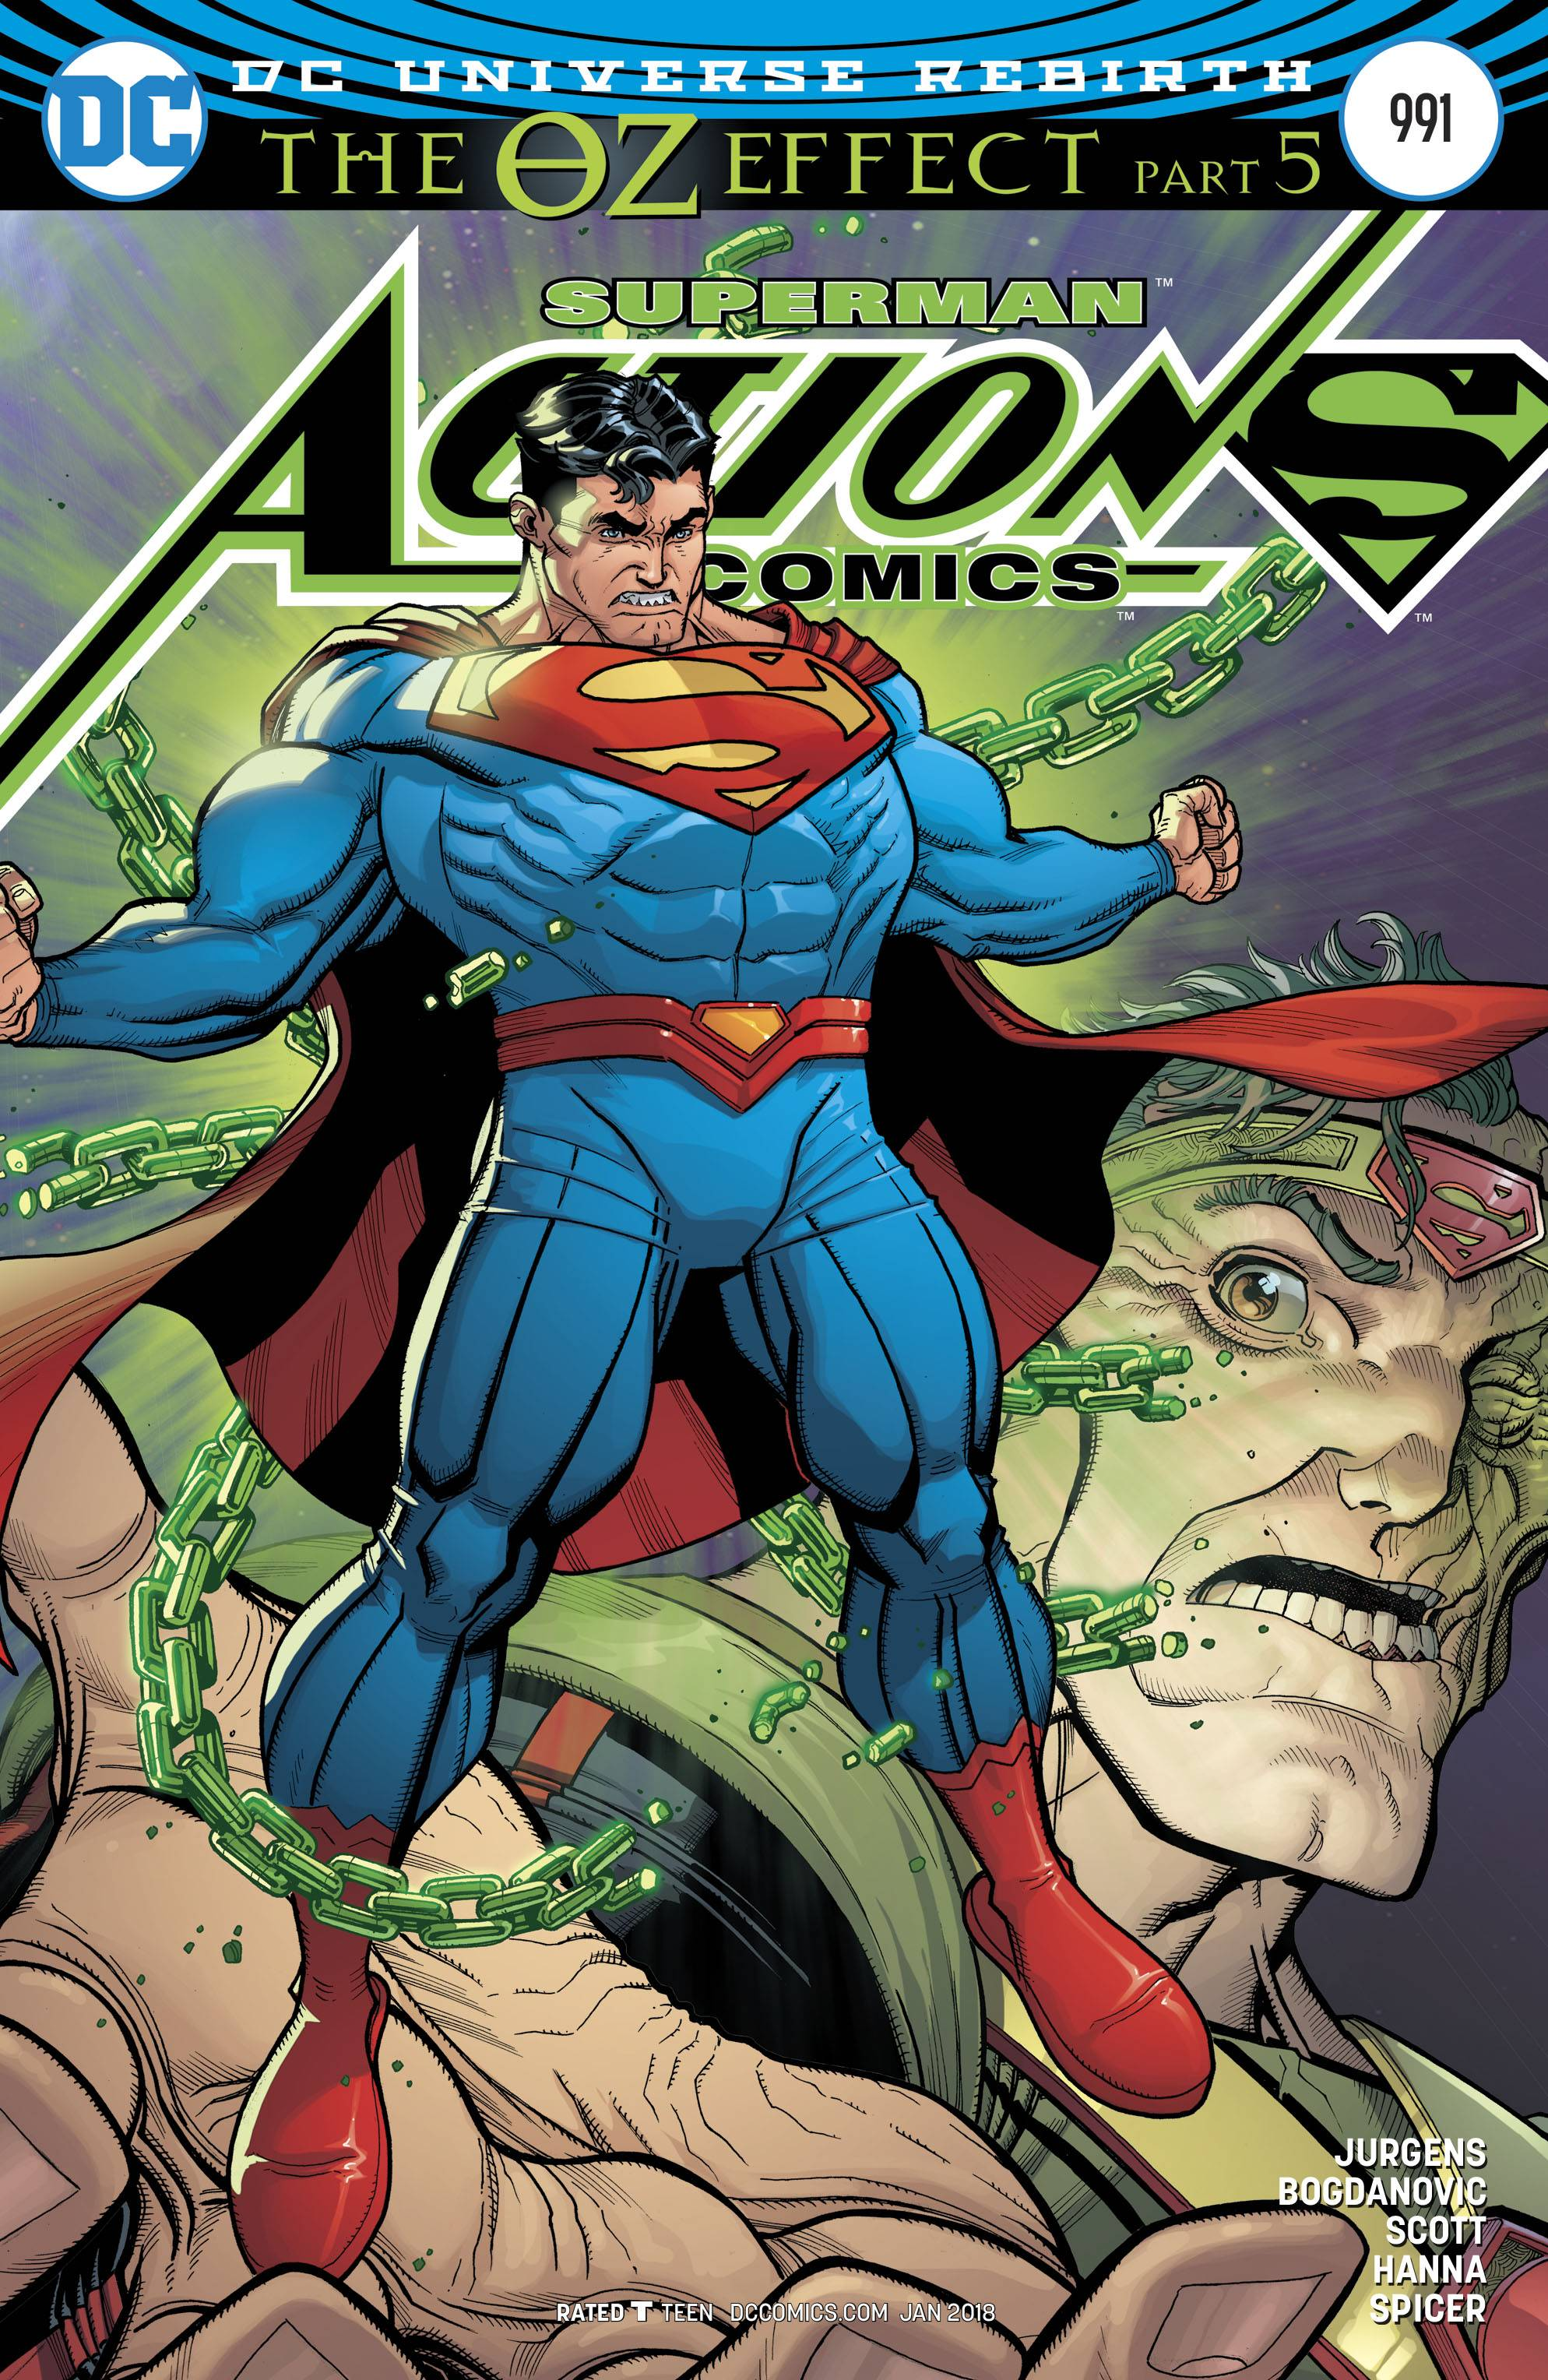 Action Comics #991 Lenticular Cover